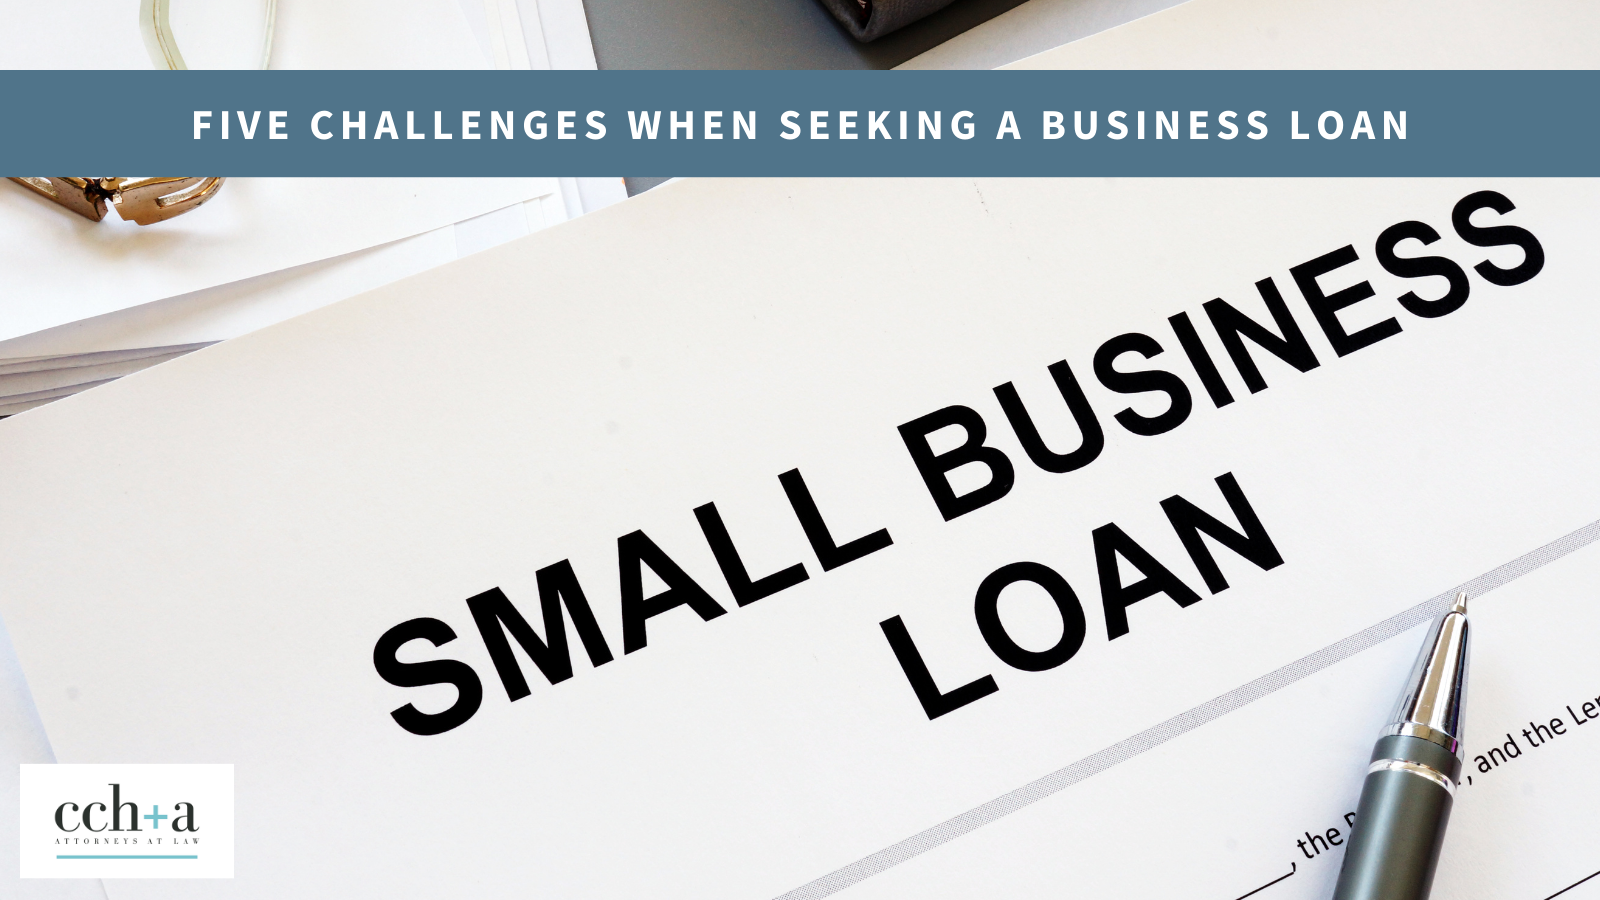 Ccha small business loan tw 1